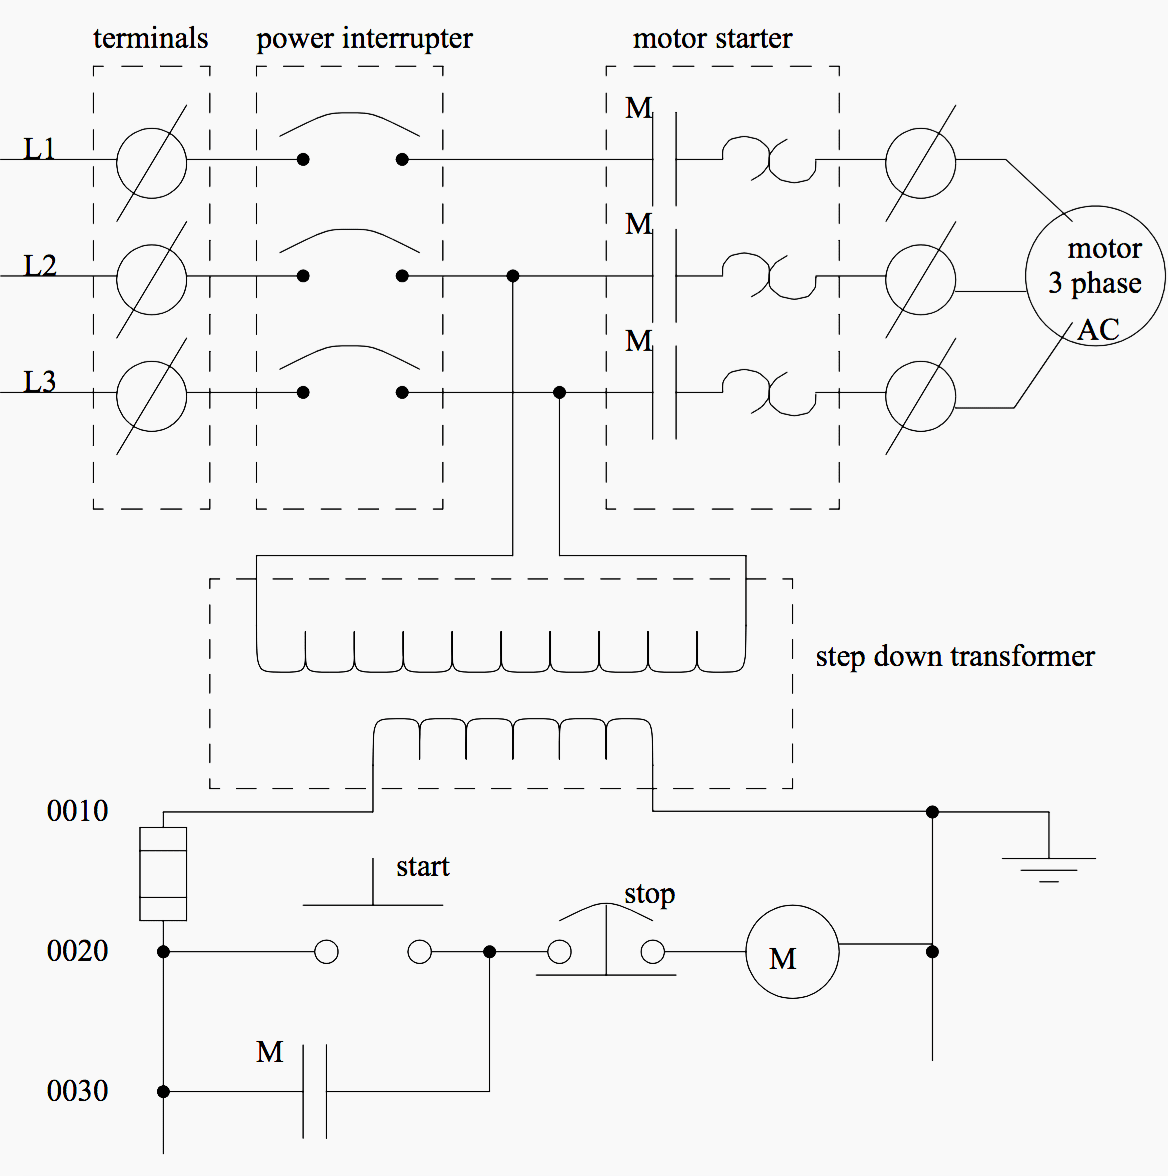 hight resolution of basic electrical design of a plc panel wiring diagrams eep a motor controller schematic